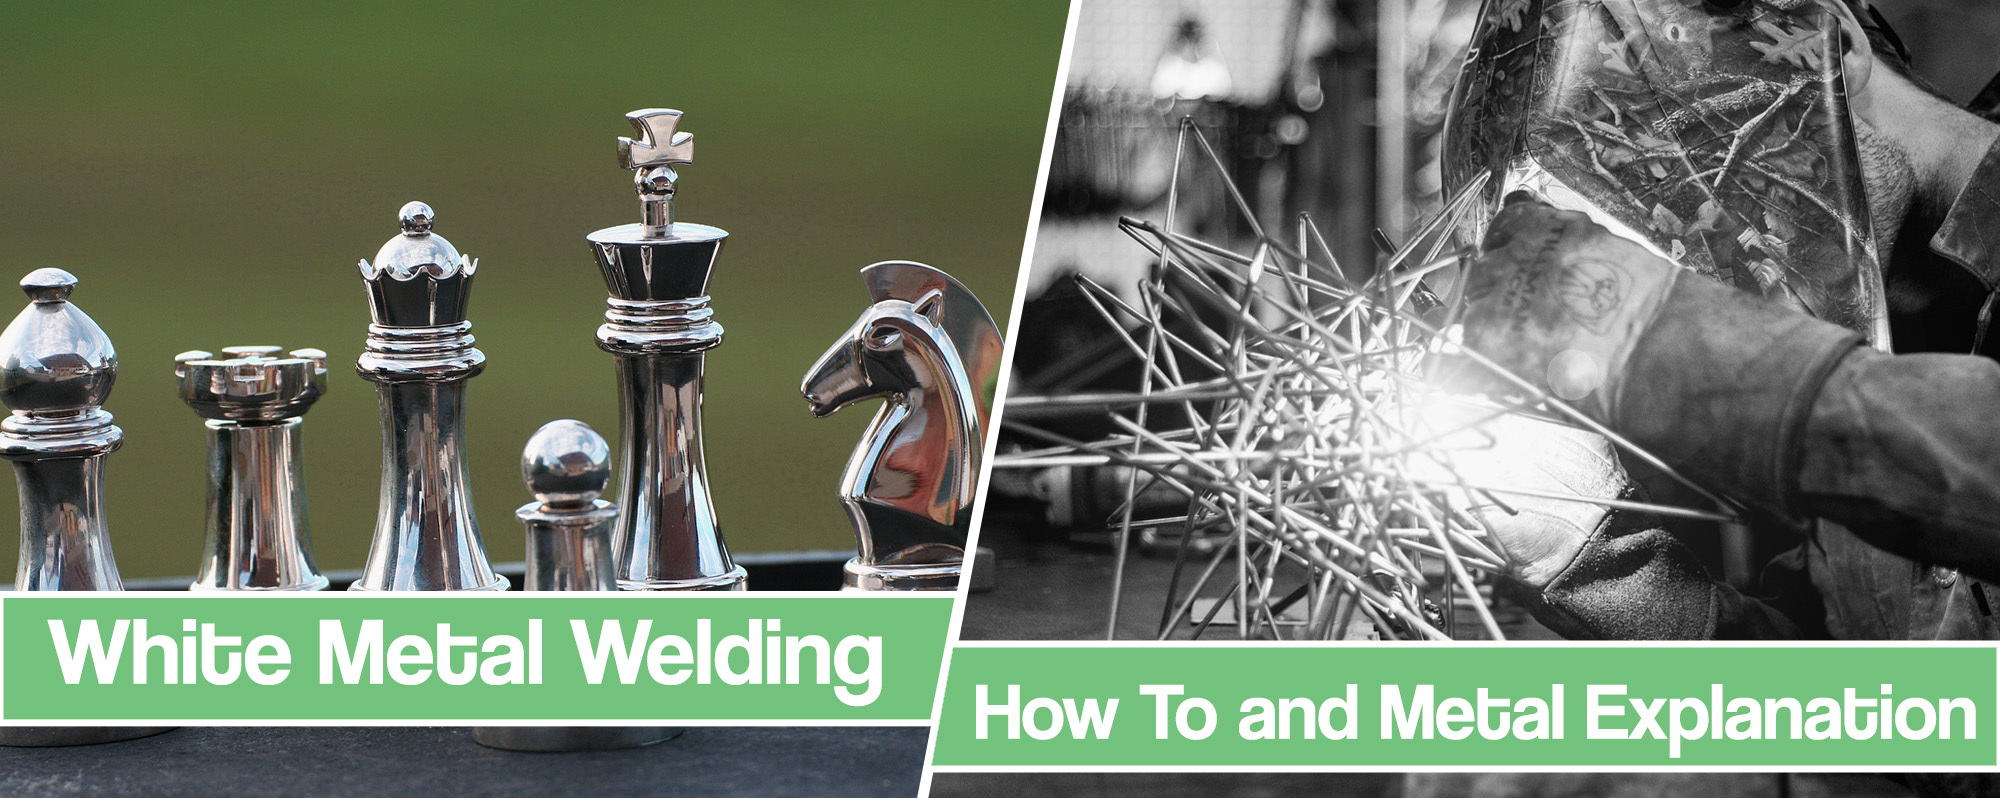 White Metal Welding feature image